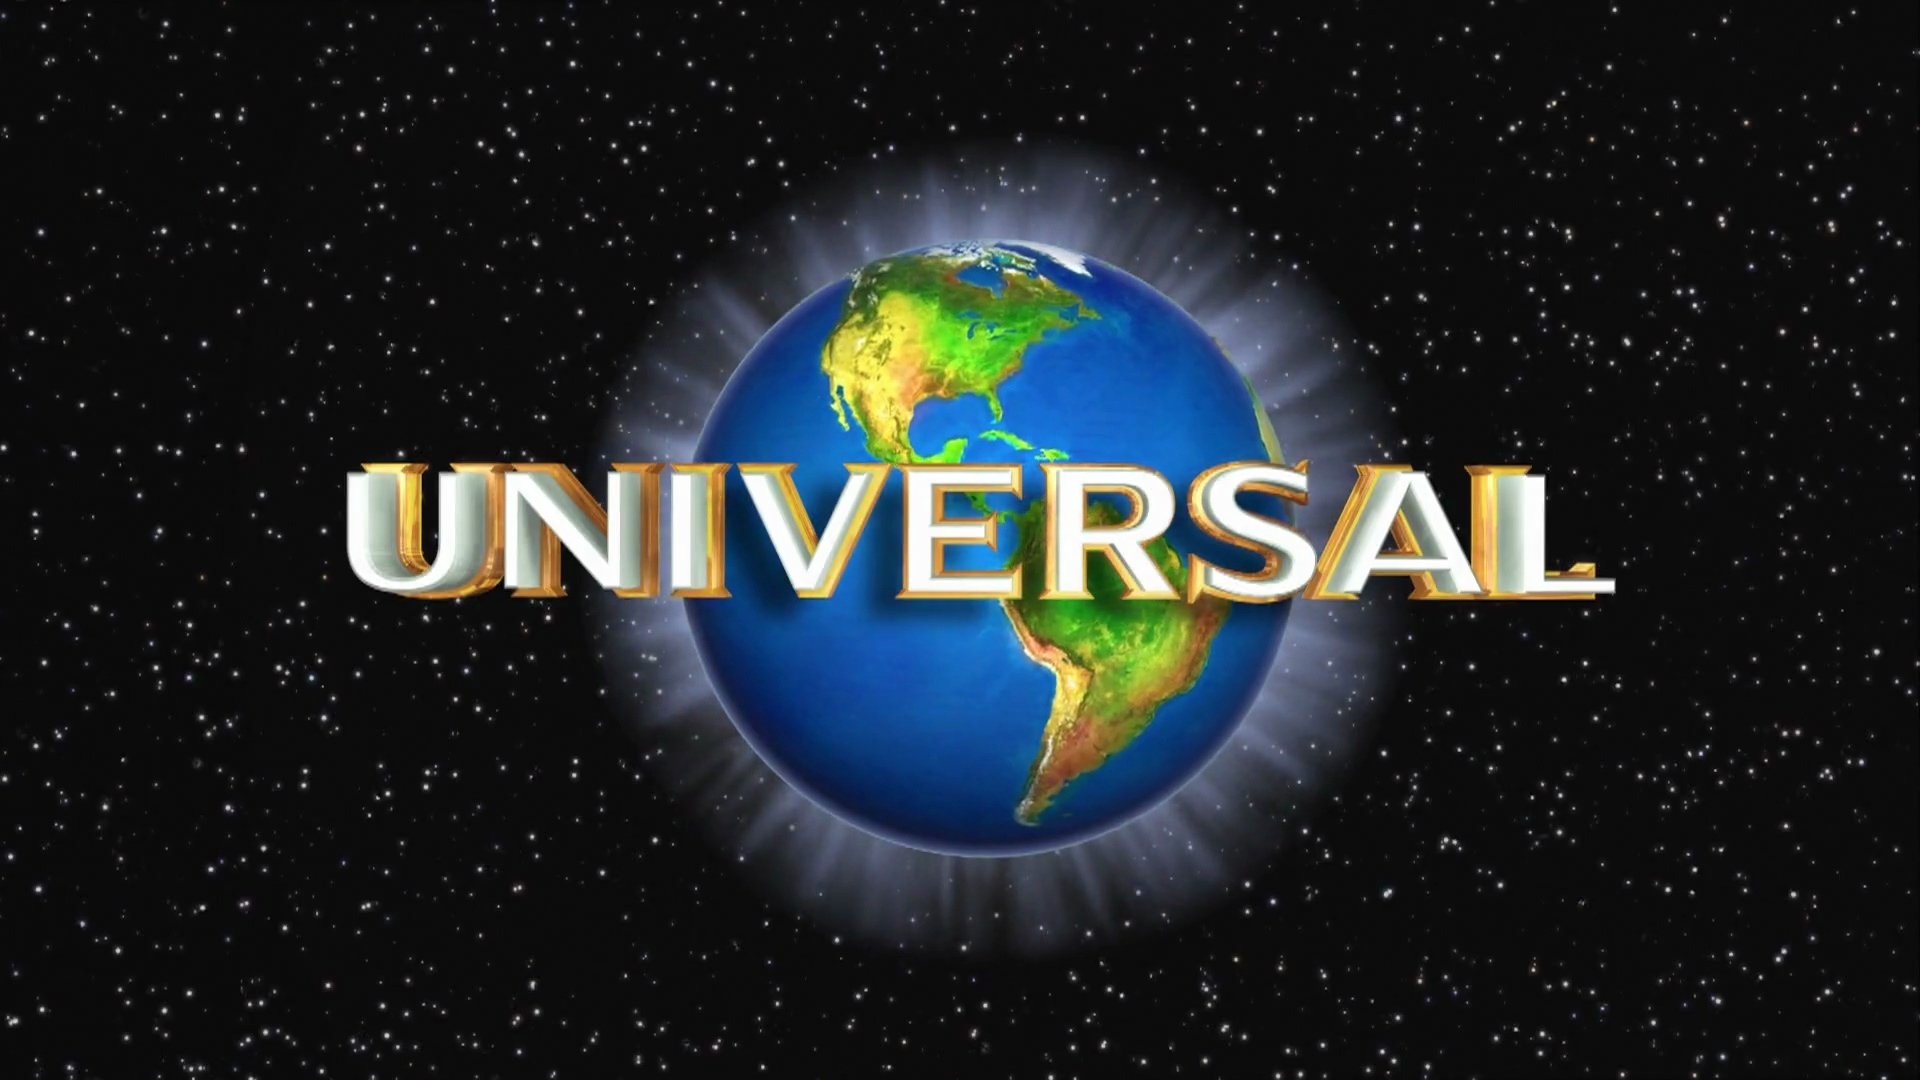 Http Thefilmstage Com News Universal Gets Into Alien Invasion Business With Writer F Scott Frazier